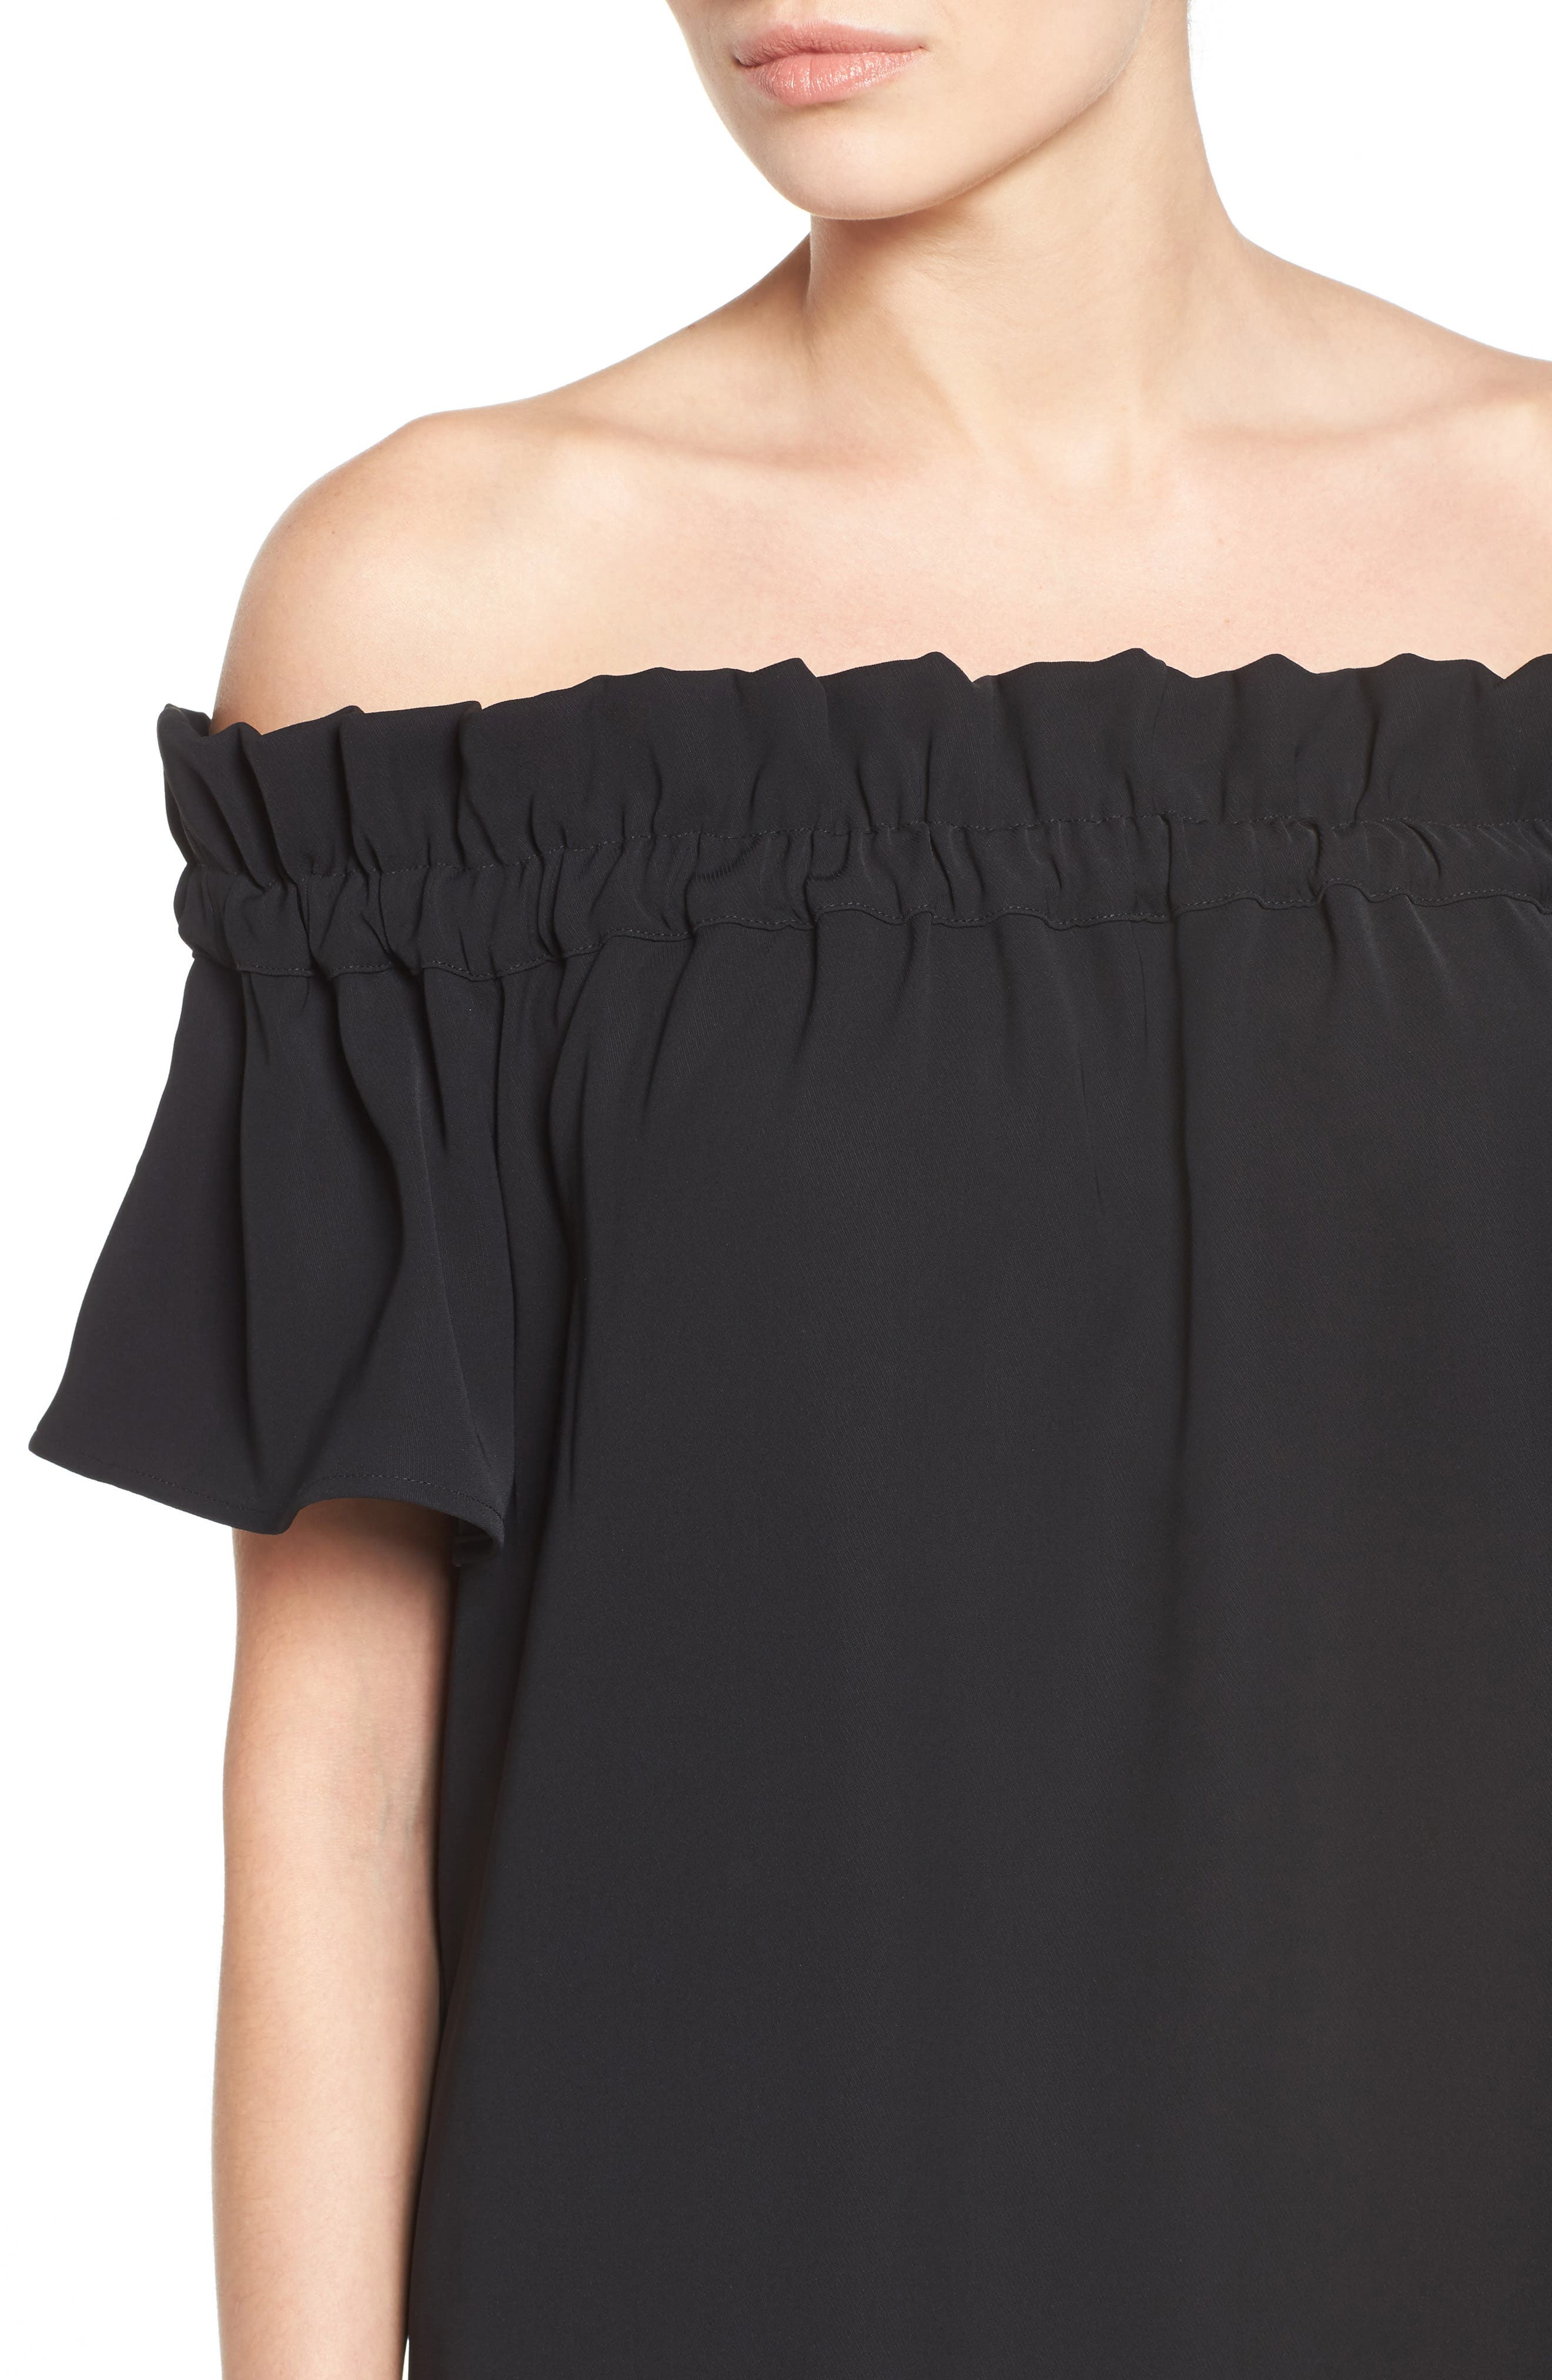 Off the Shoulder Dress,                             Alternate thumbnail 4, color,                             Black